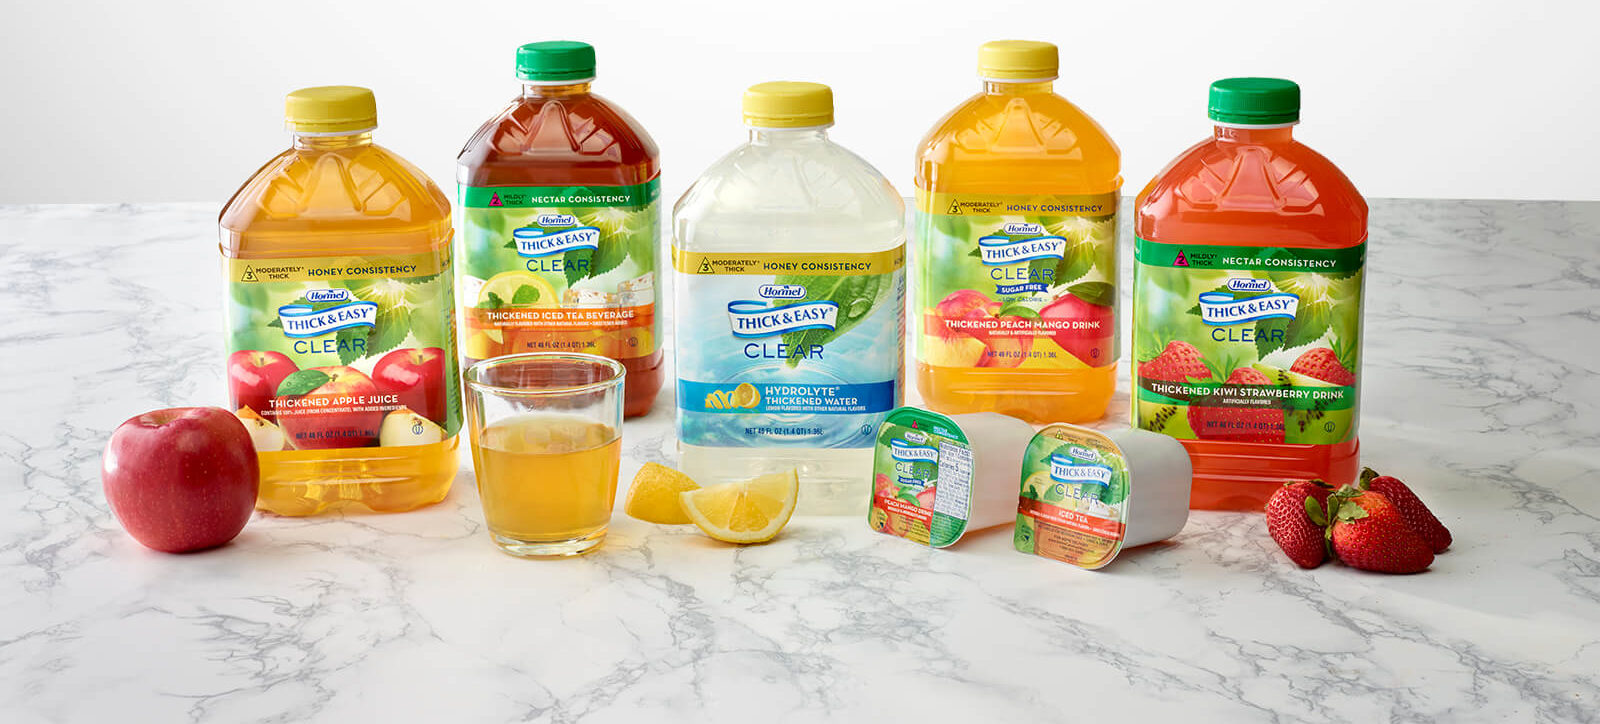 Thick & Easy Clear drinks on table